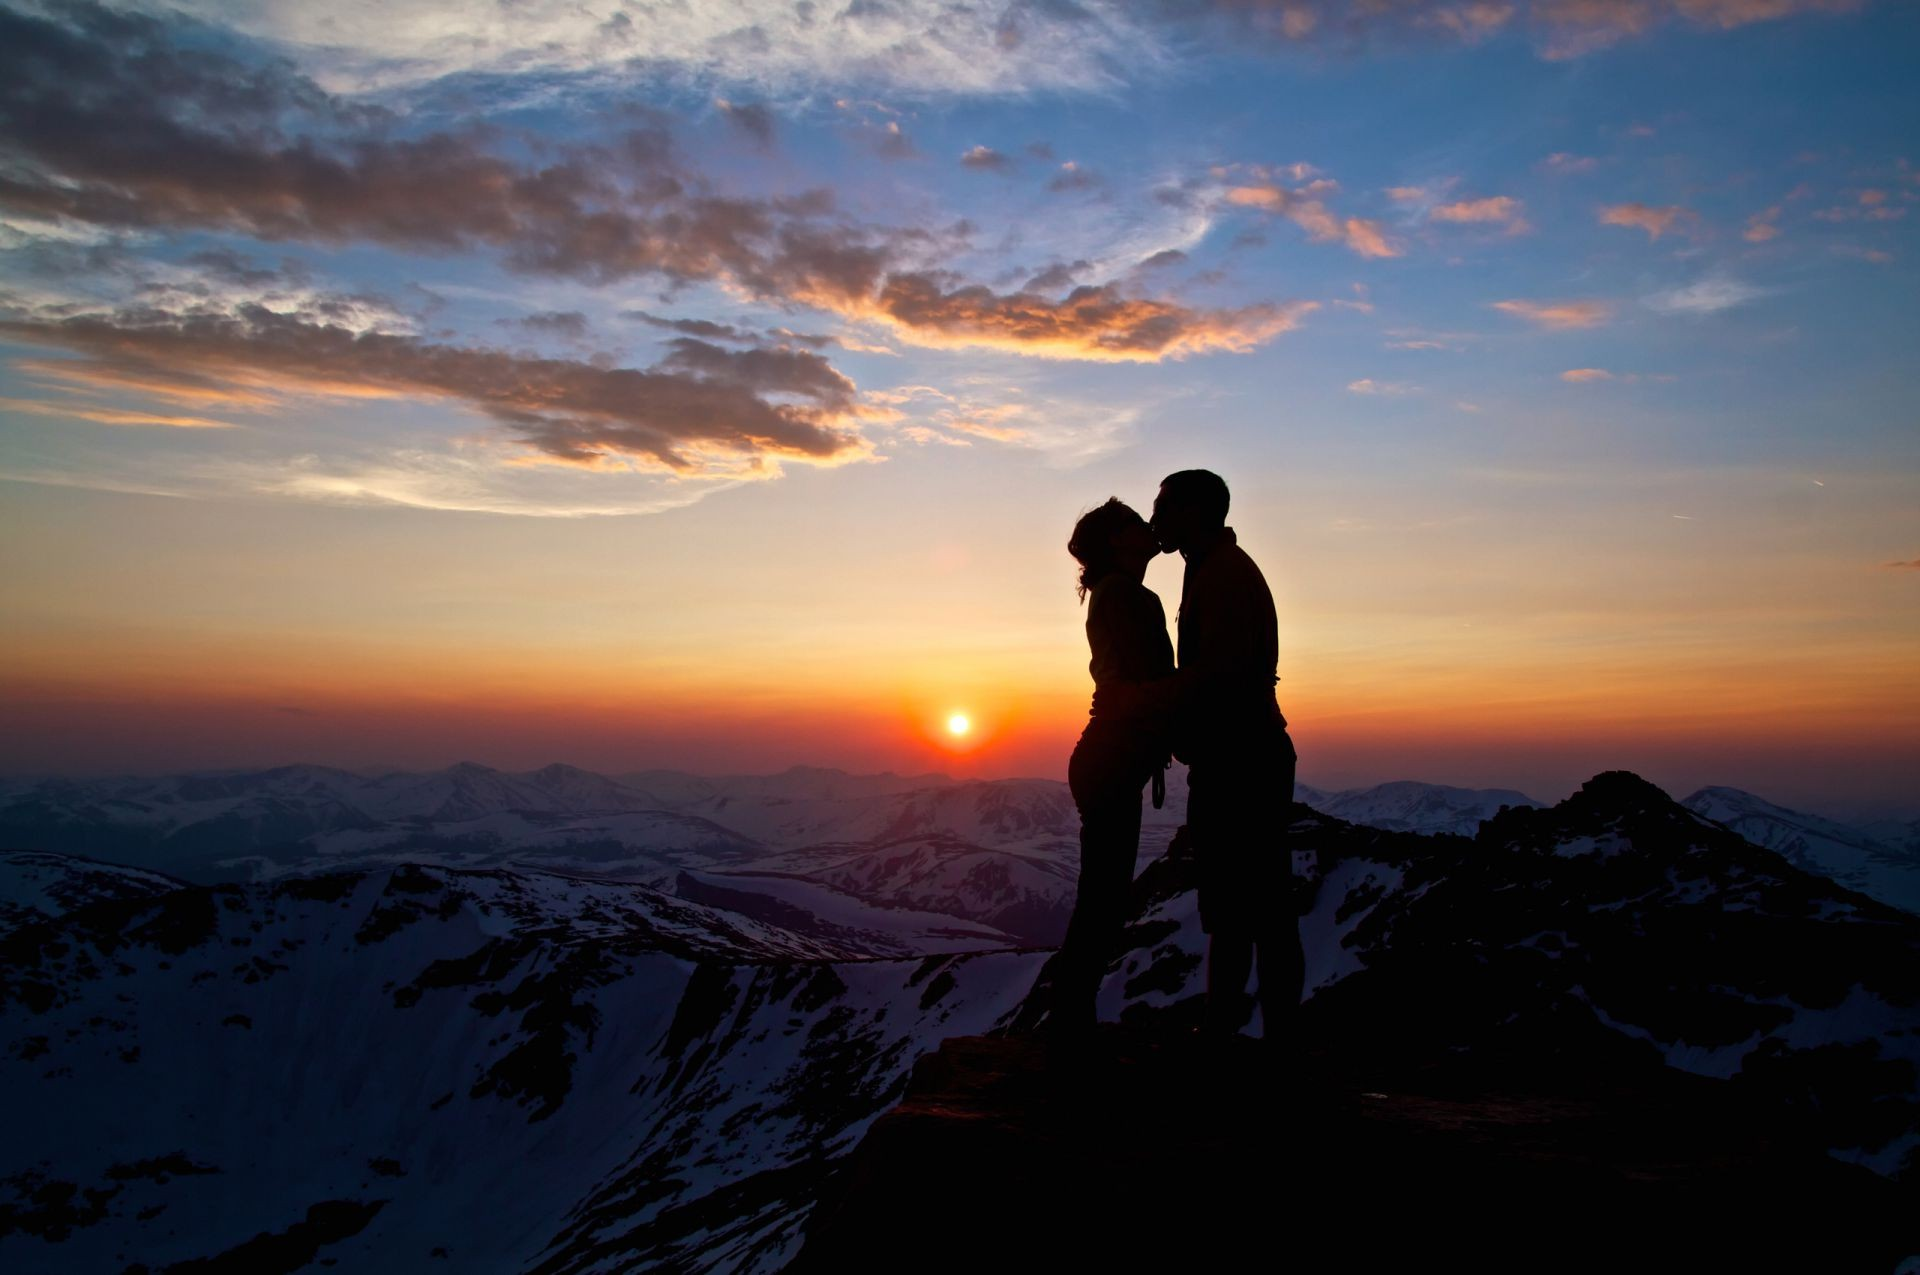 couples sunset dawn evening mountain sky sun dusk landscape backlit silhouette climber hike nature